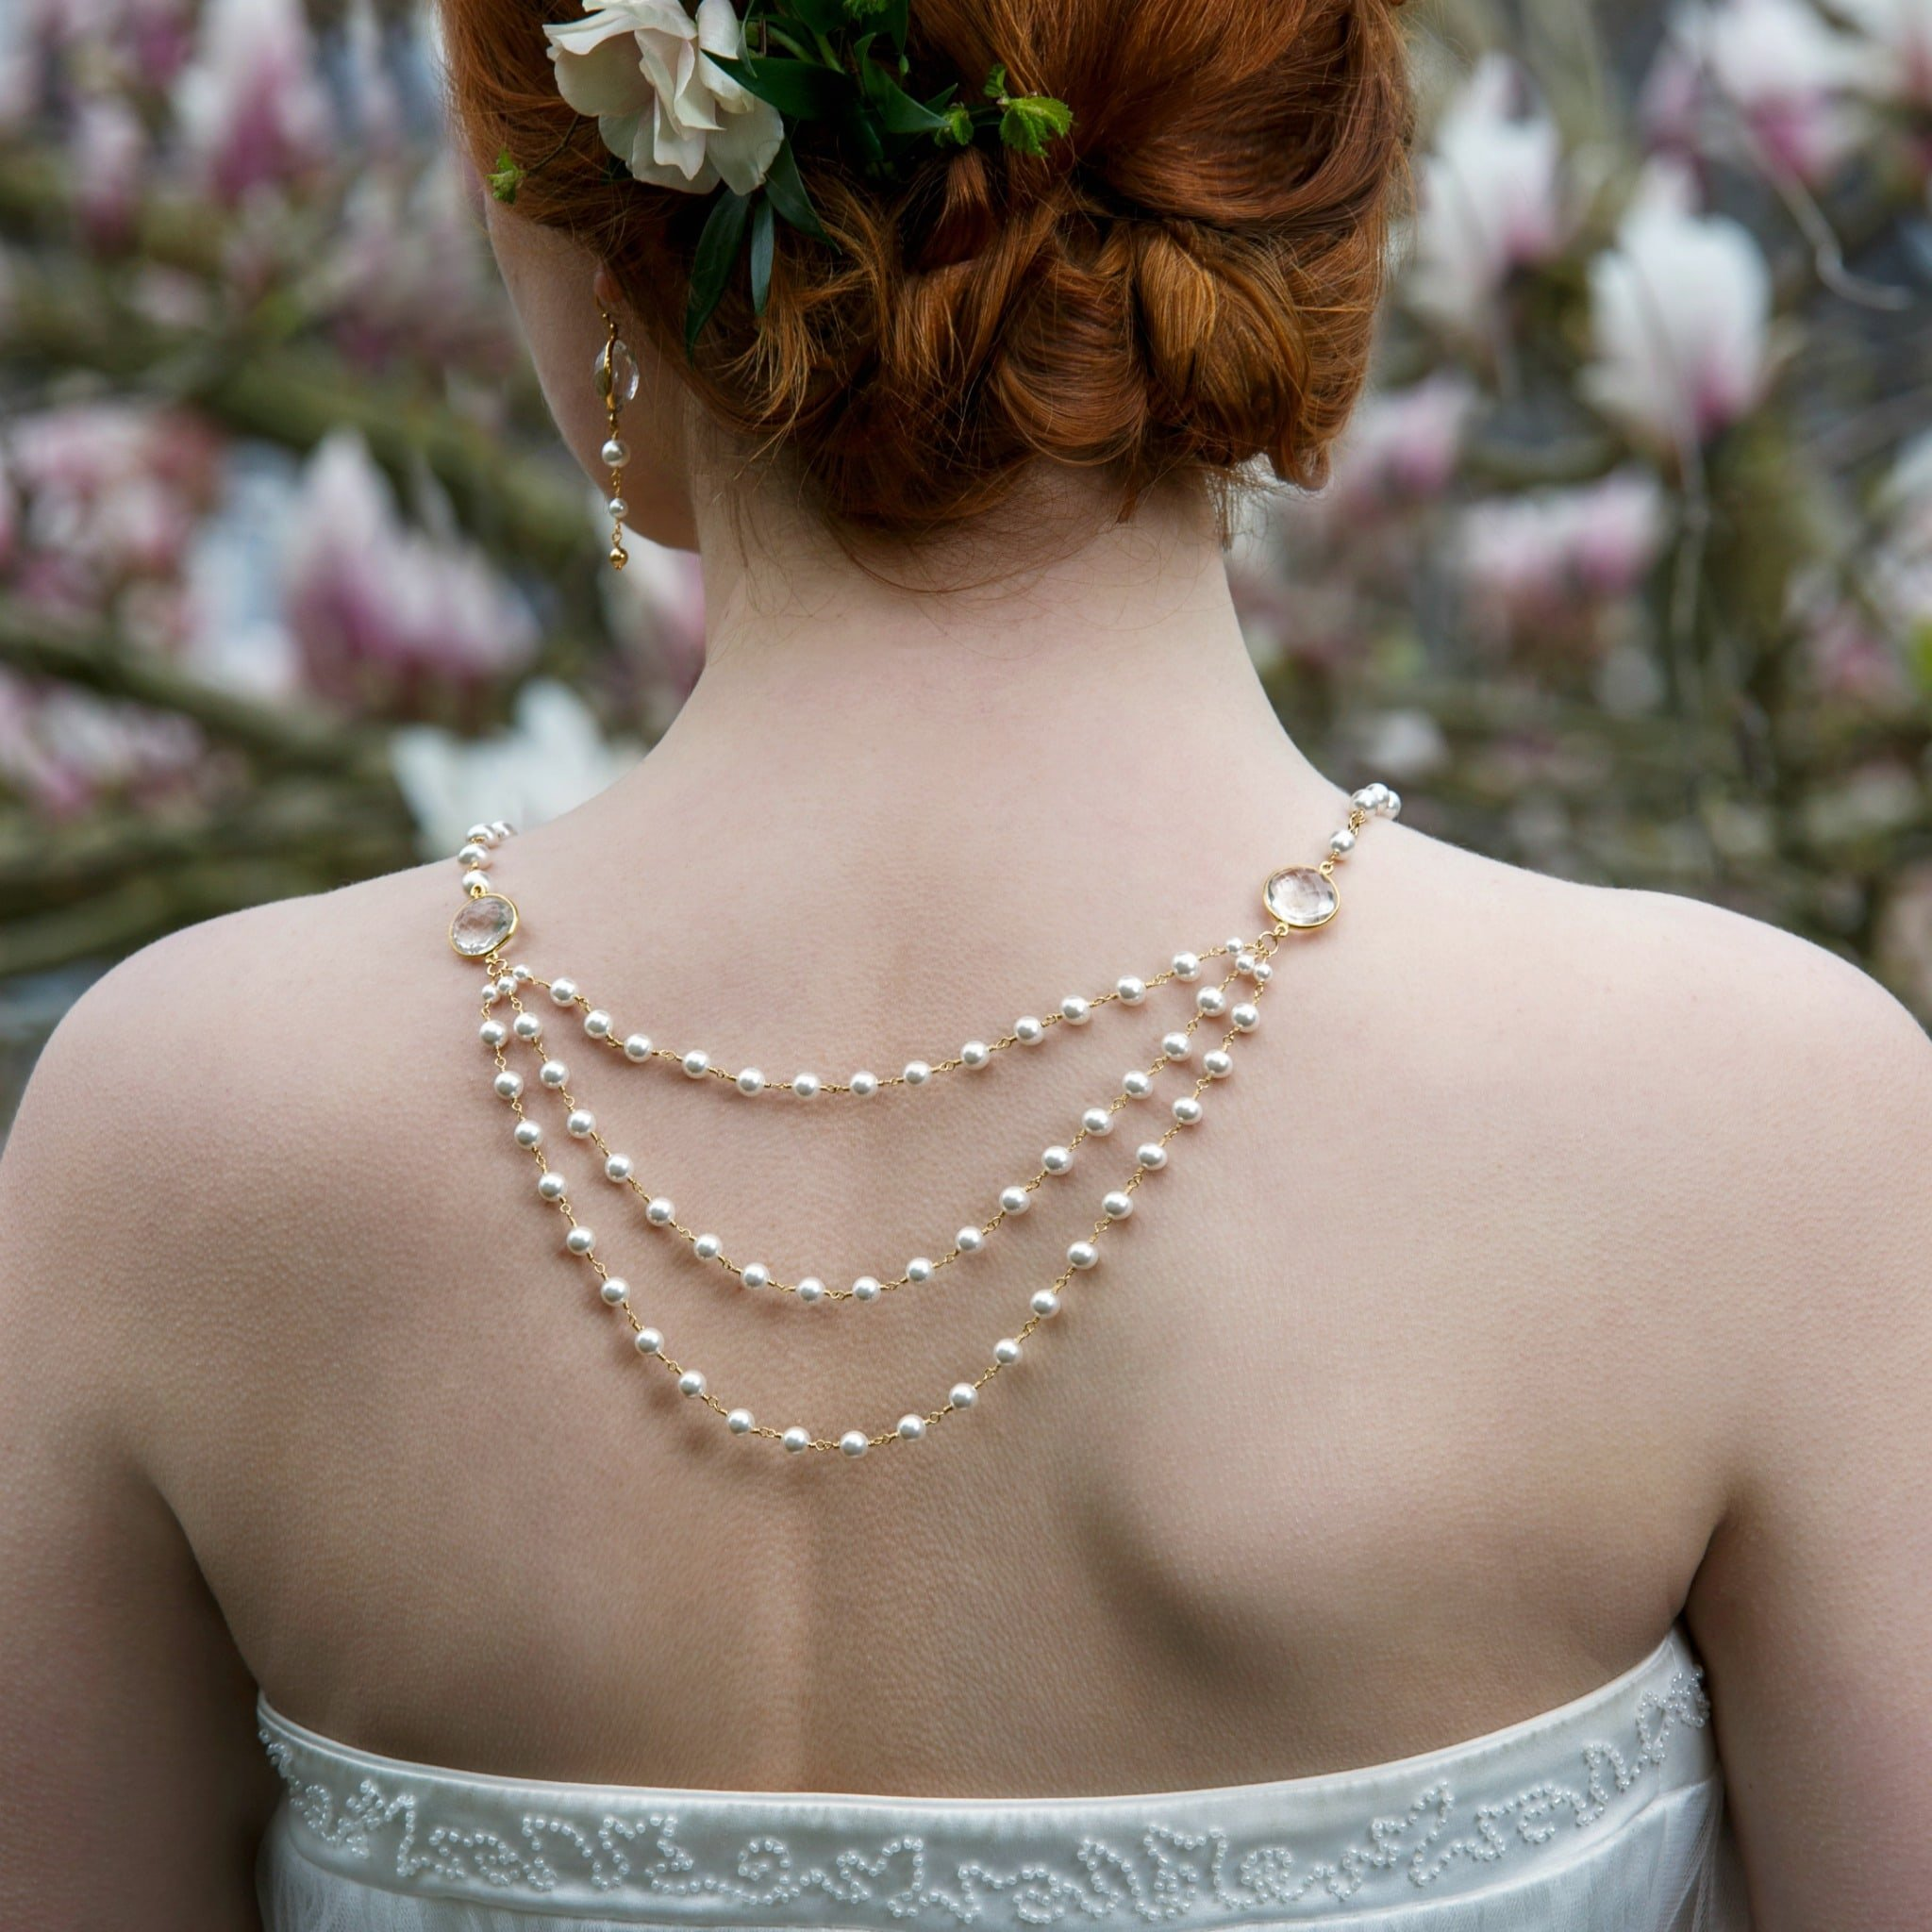 Statement Bridal Necklace | Multi Strand Wedding Necklace | Low Back Necklace Bridal